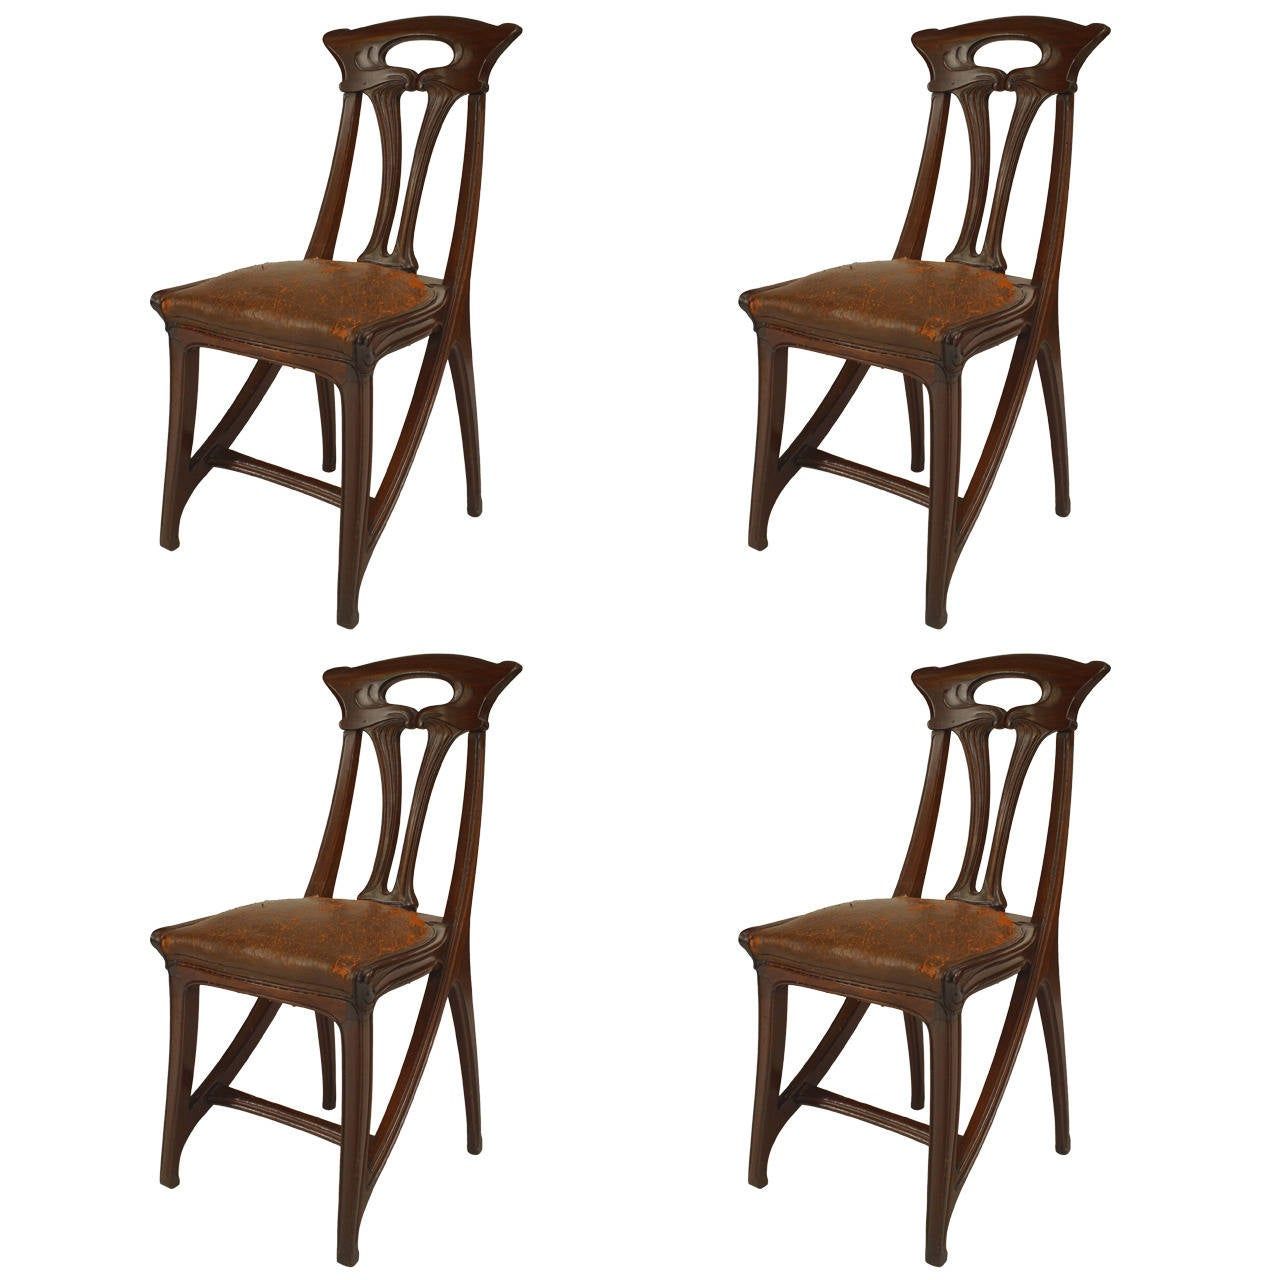 Rare original beech stained chair by eugene gaillard circa 1900 at - Set Of Four French Art Nouveau Walnut And Leather Side Chairs By Gaillard 1